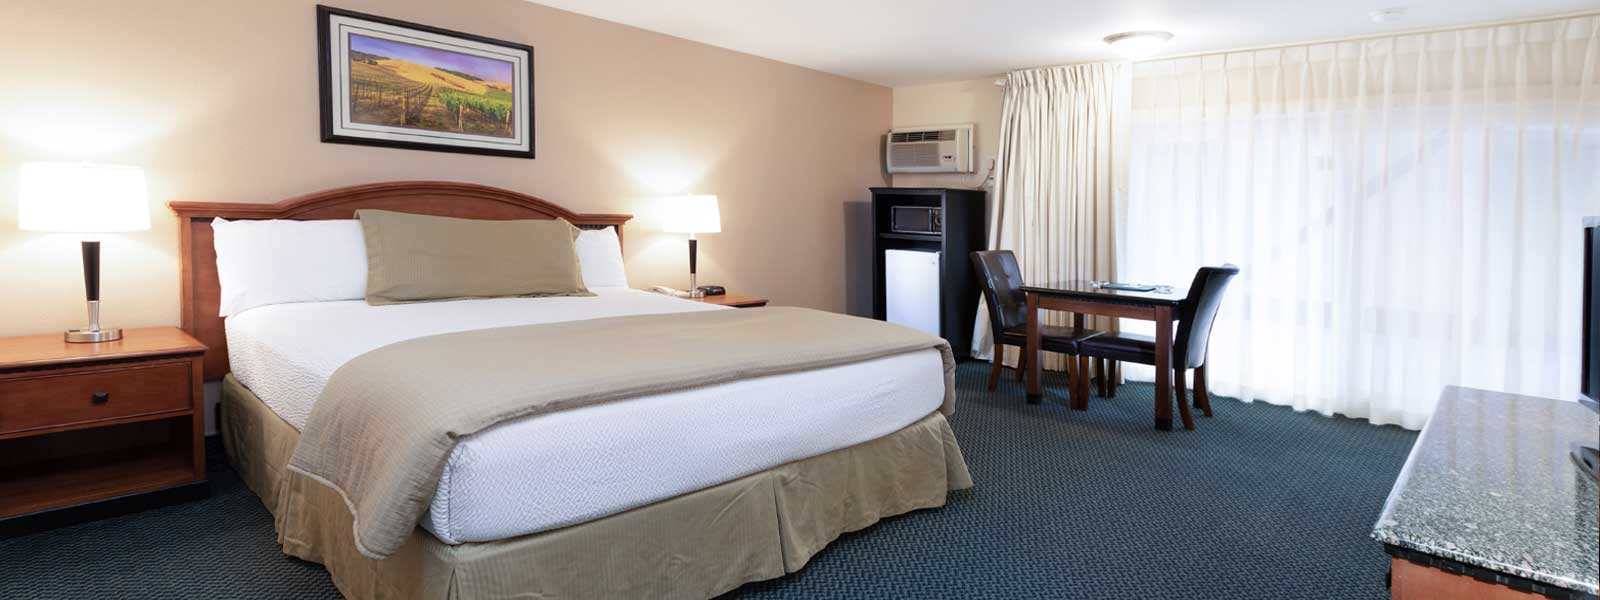 Pea Soup Andersens Inn Affordable Lodging In Buellton California Clean Comfortable Rooms Newly Remodeled Close To